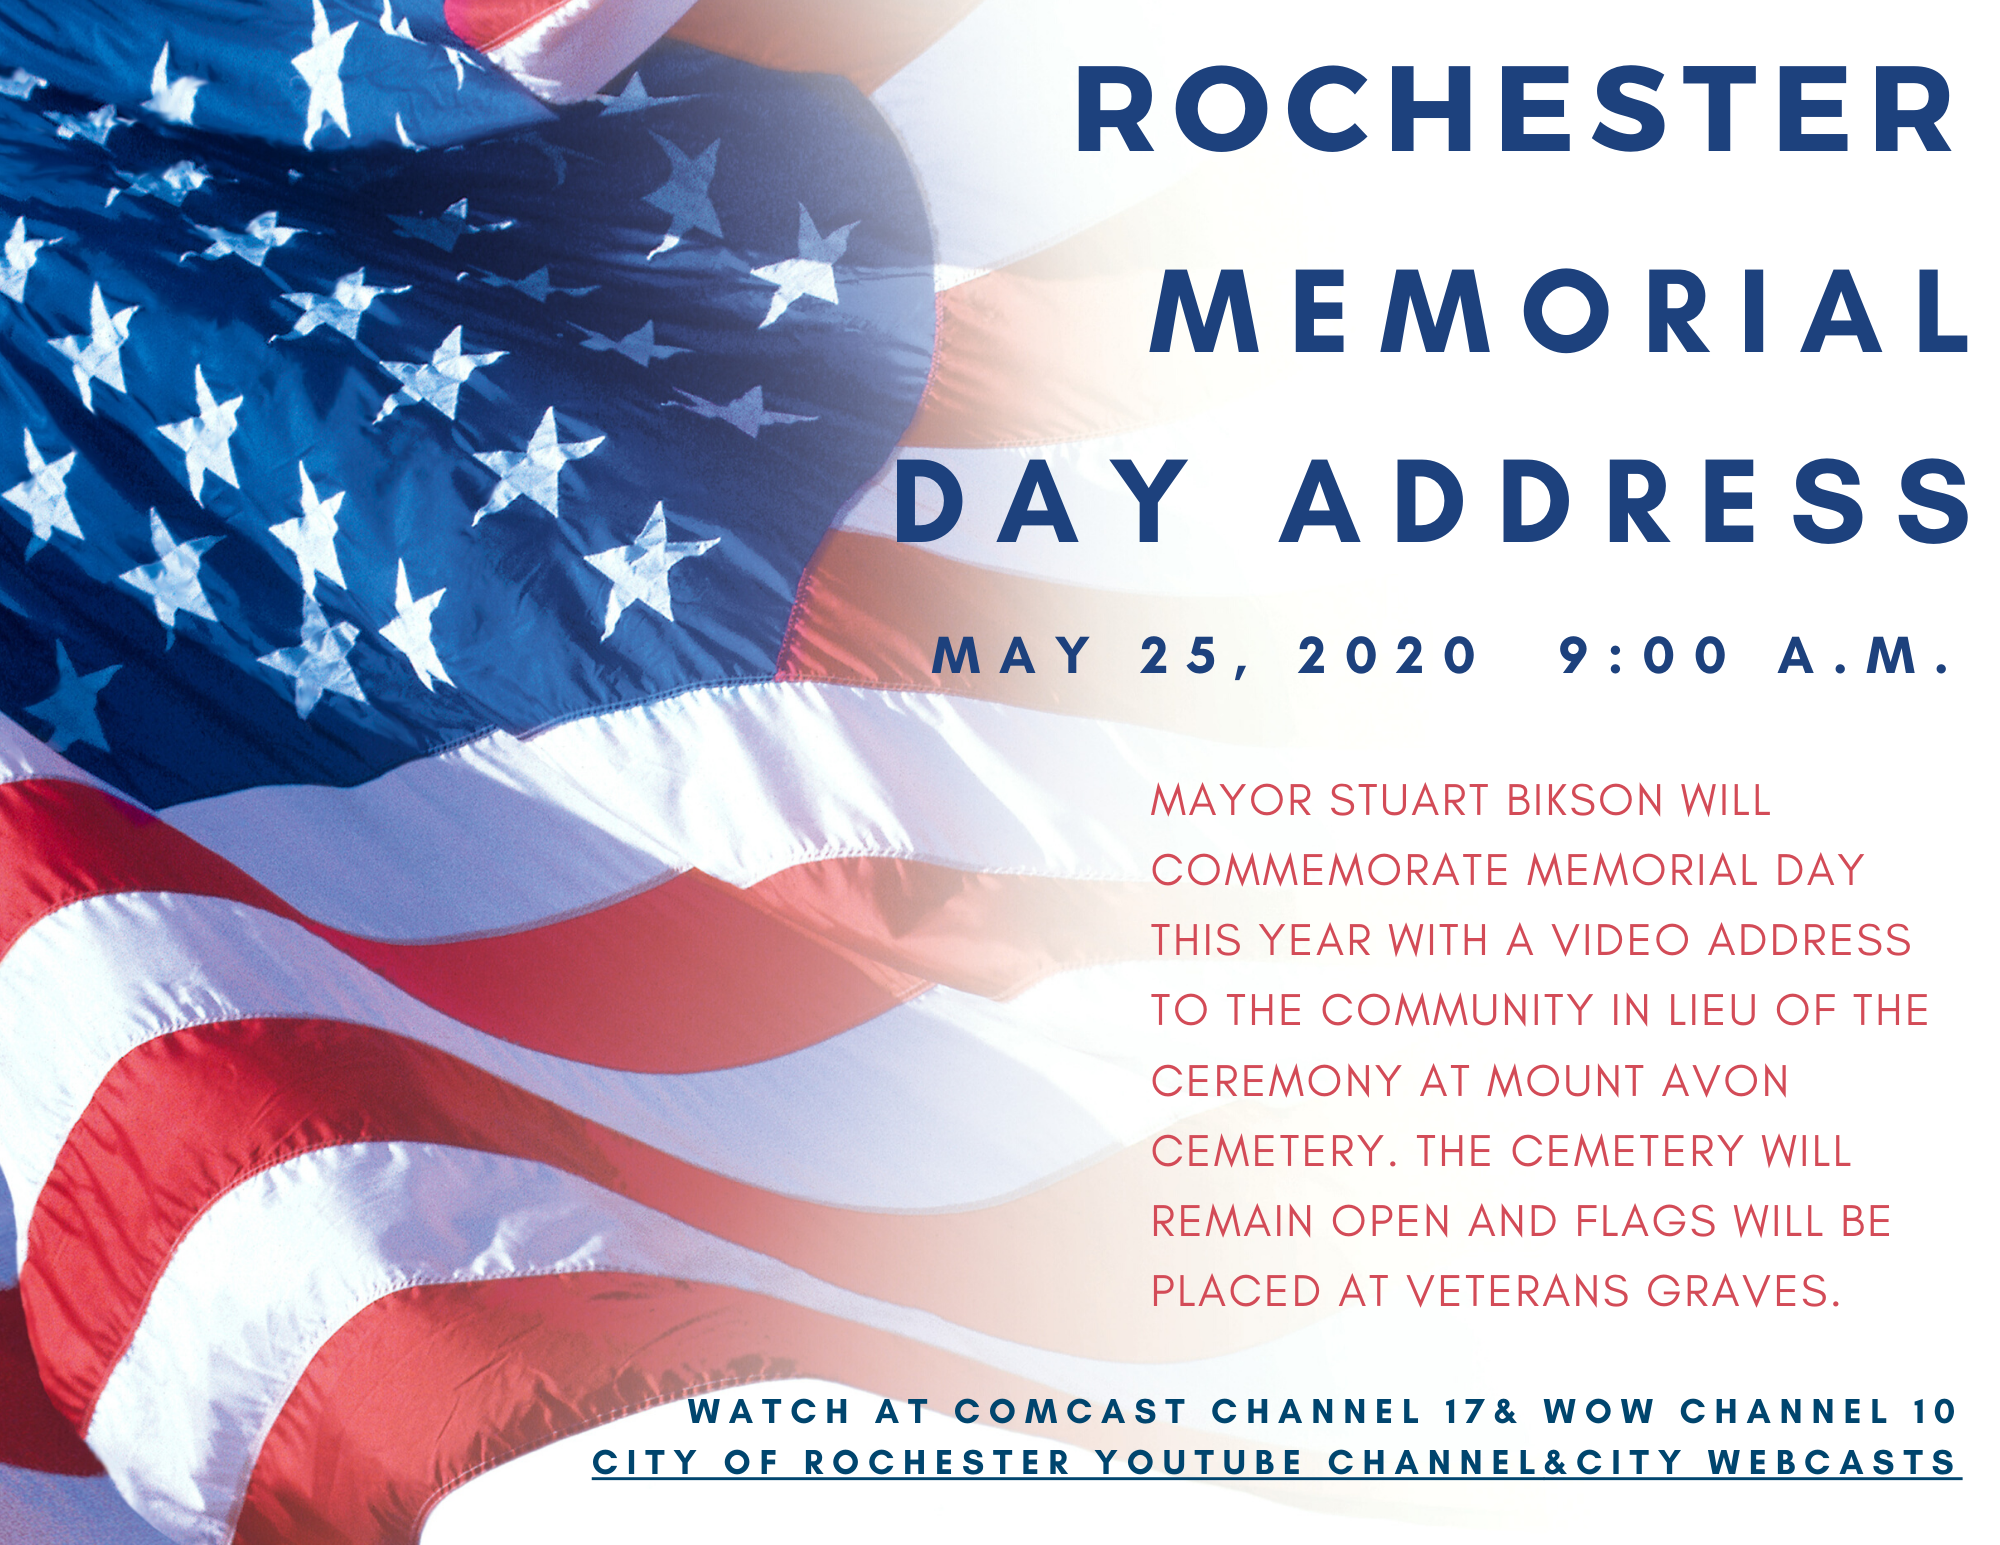 Memorial Day Address